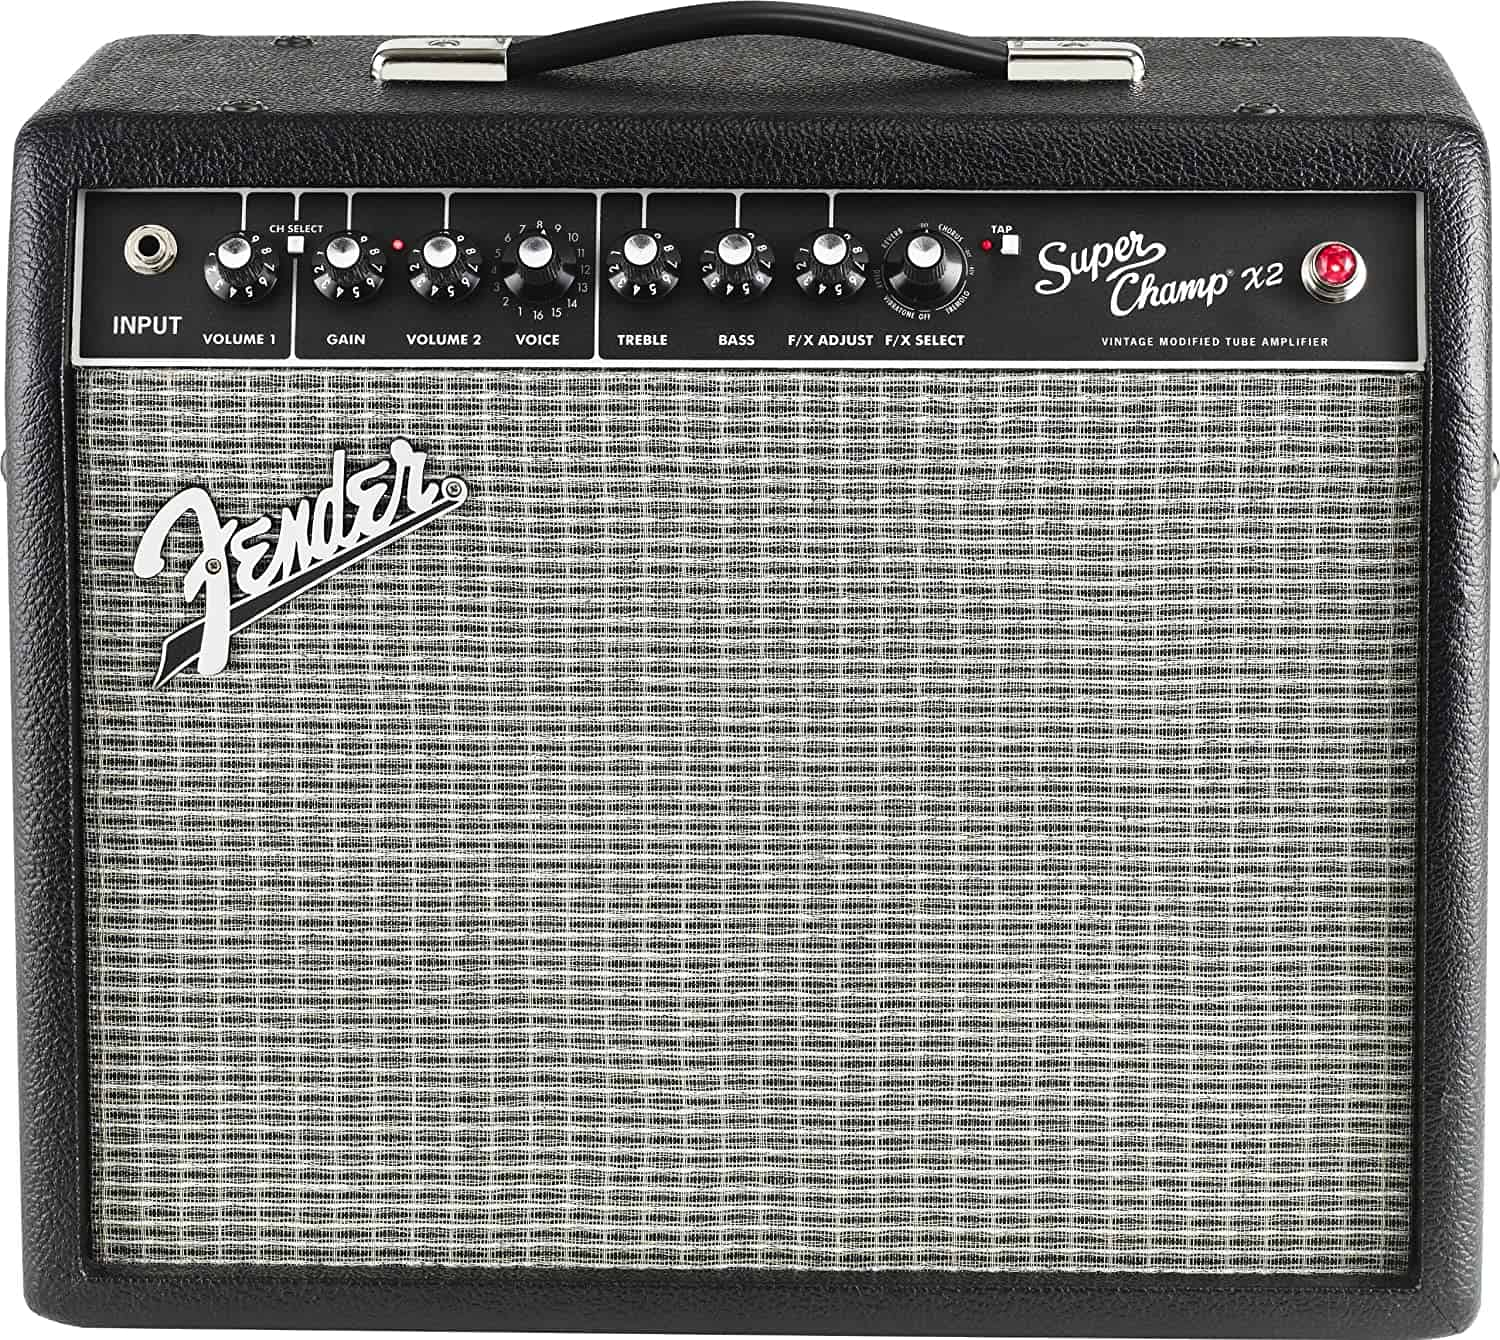 Best amp types emulation: Fender Super Champ X2